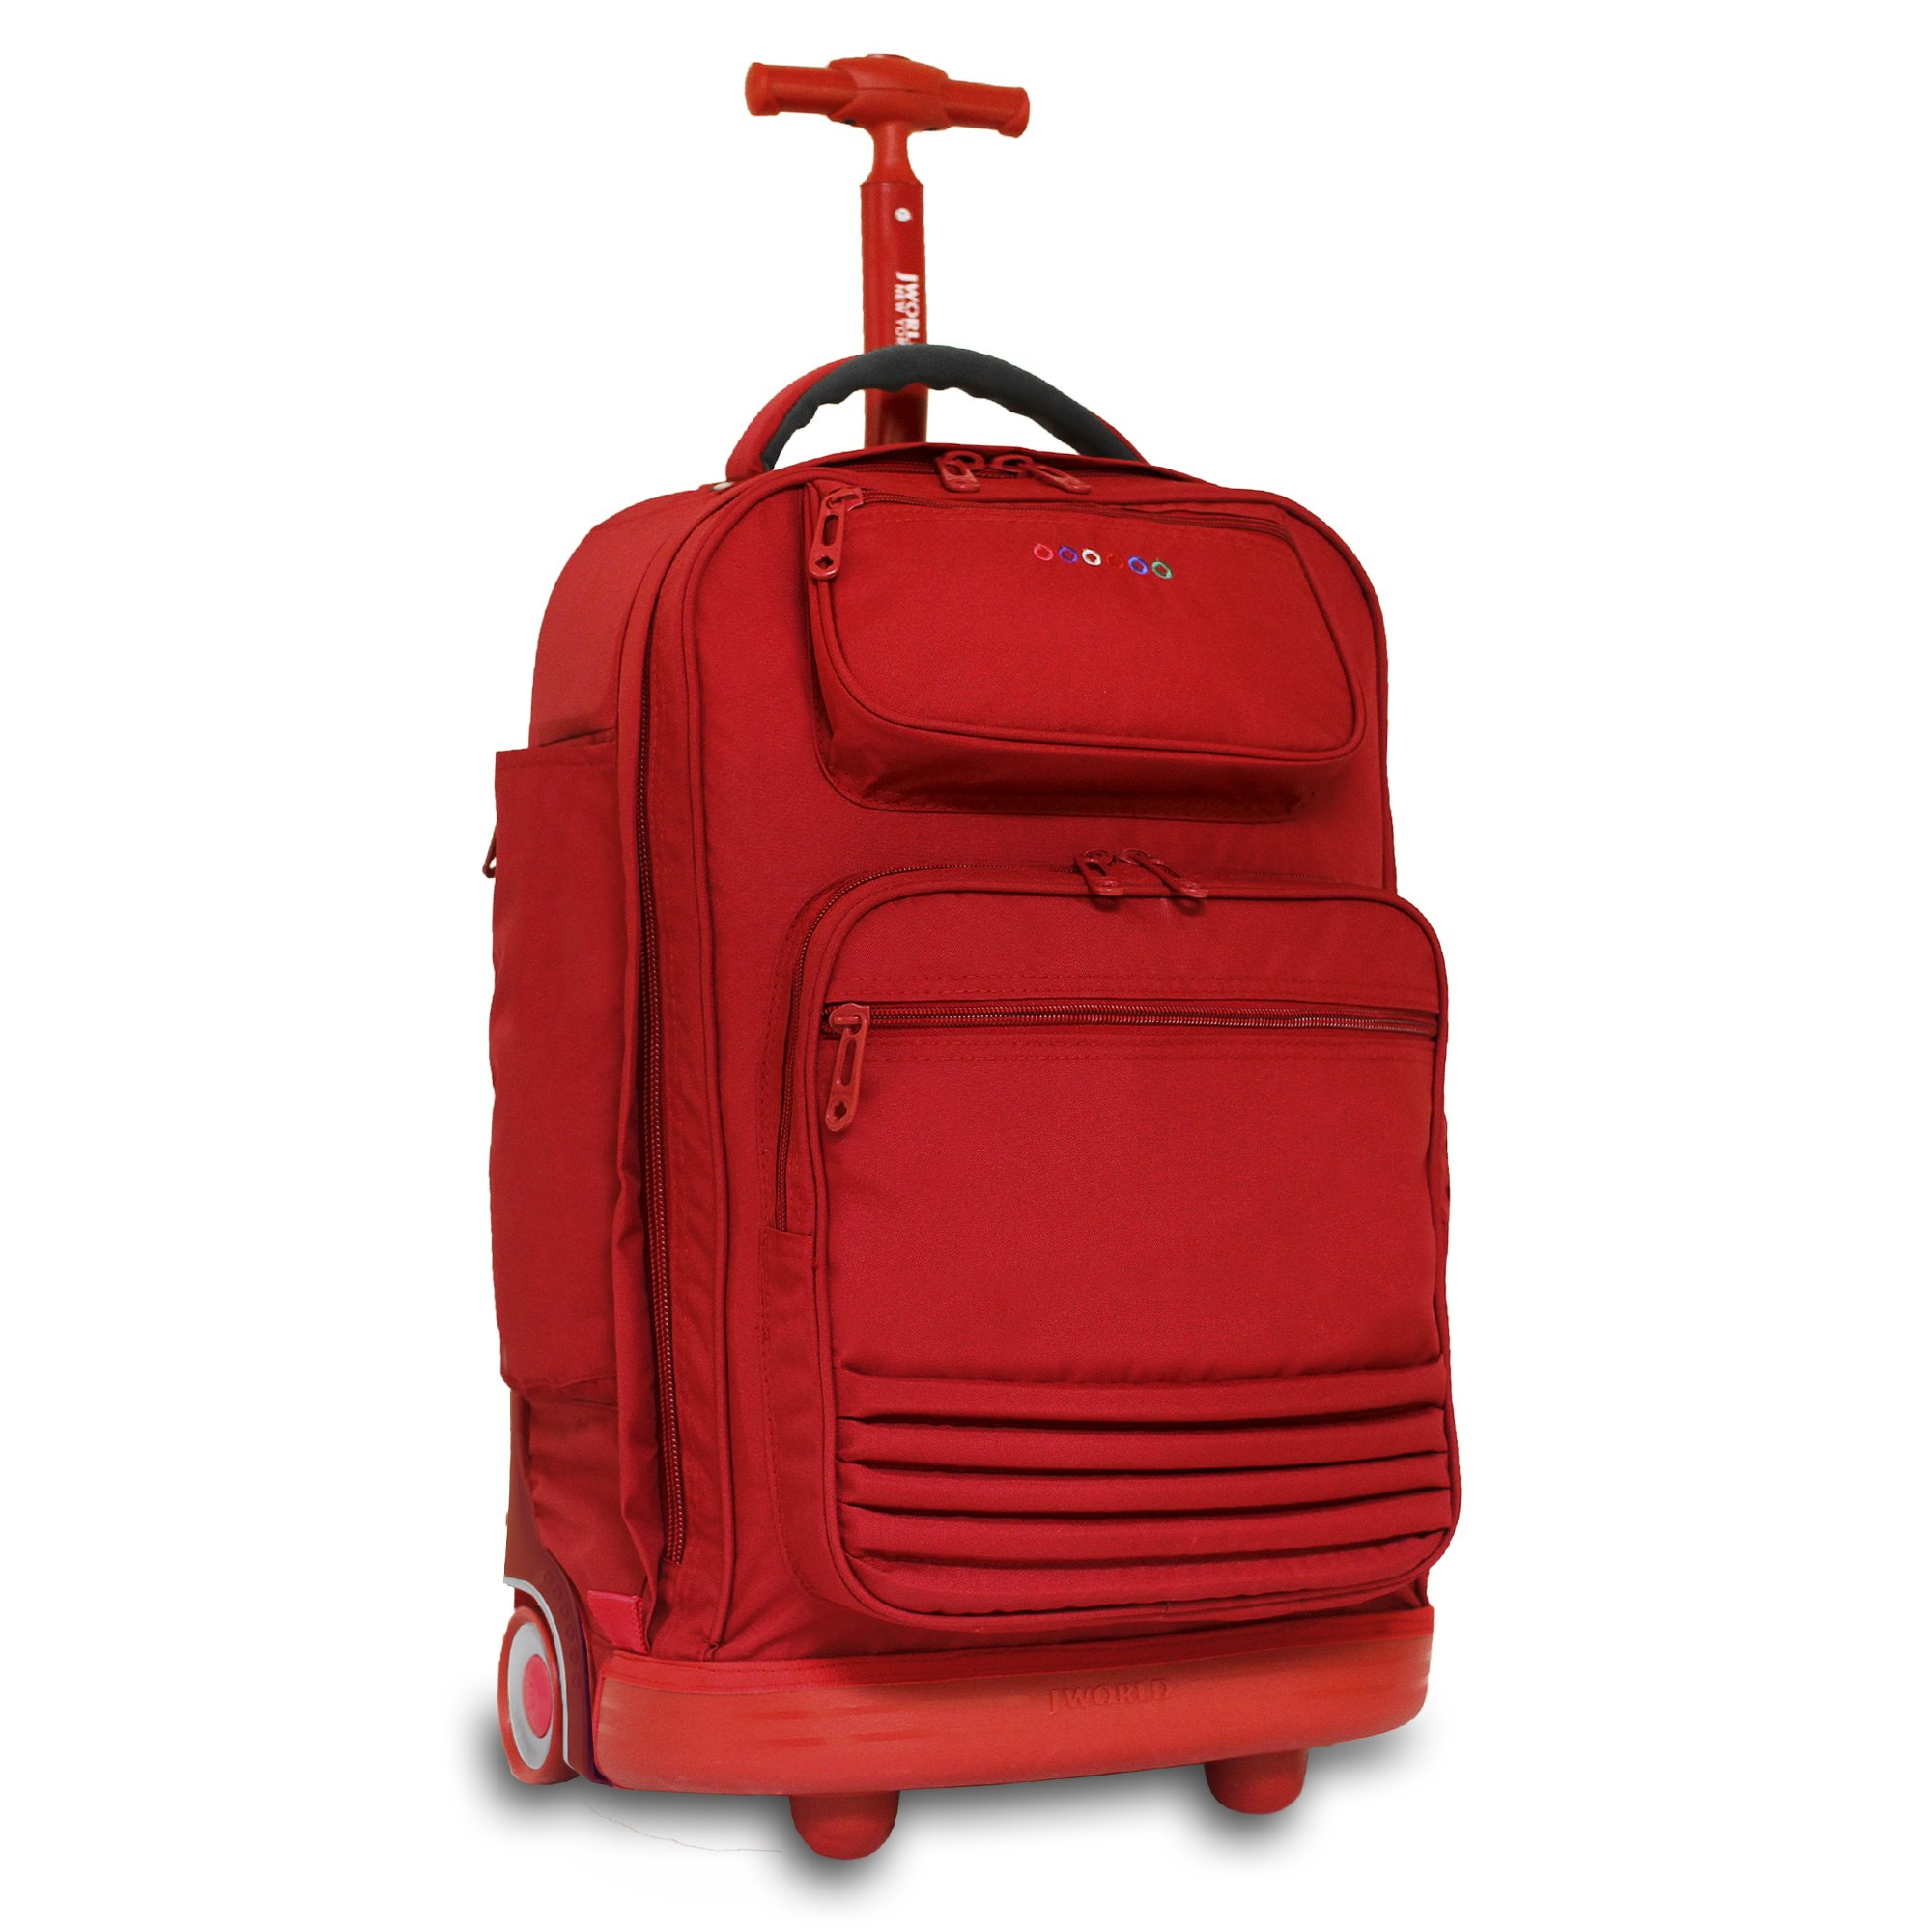 J World New York Women's Parkway Rolling Backpack, RED, One Size